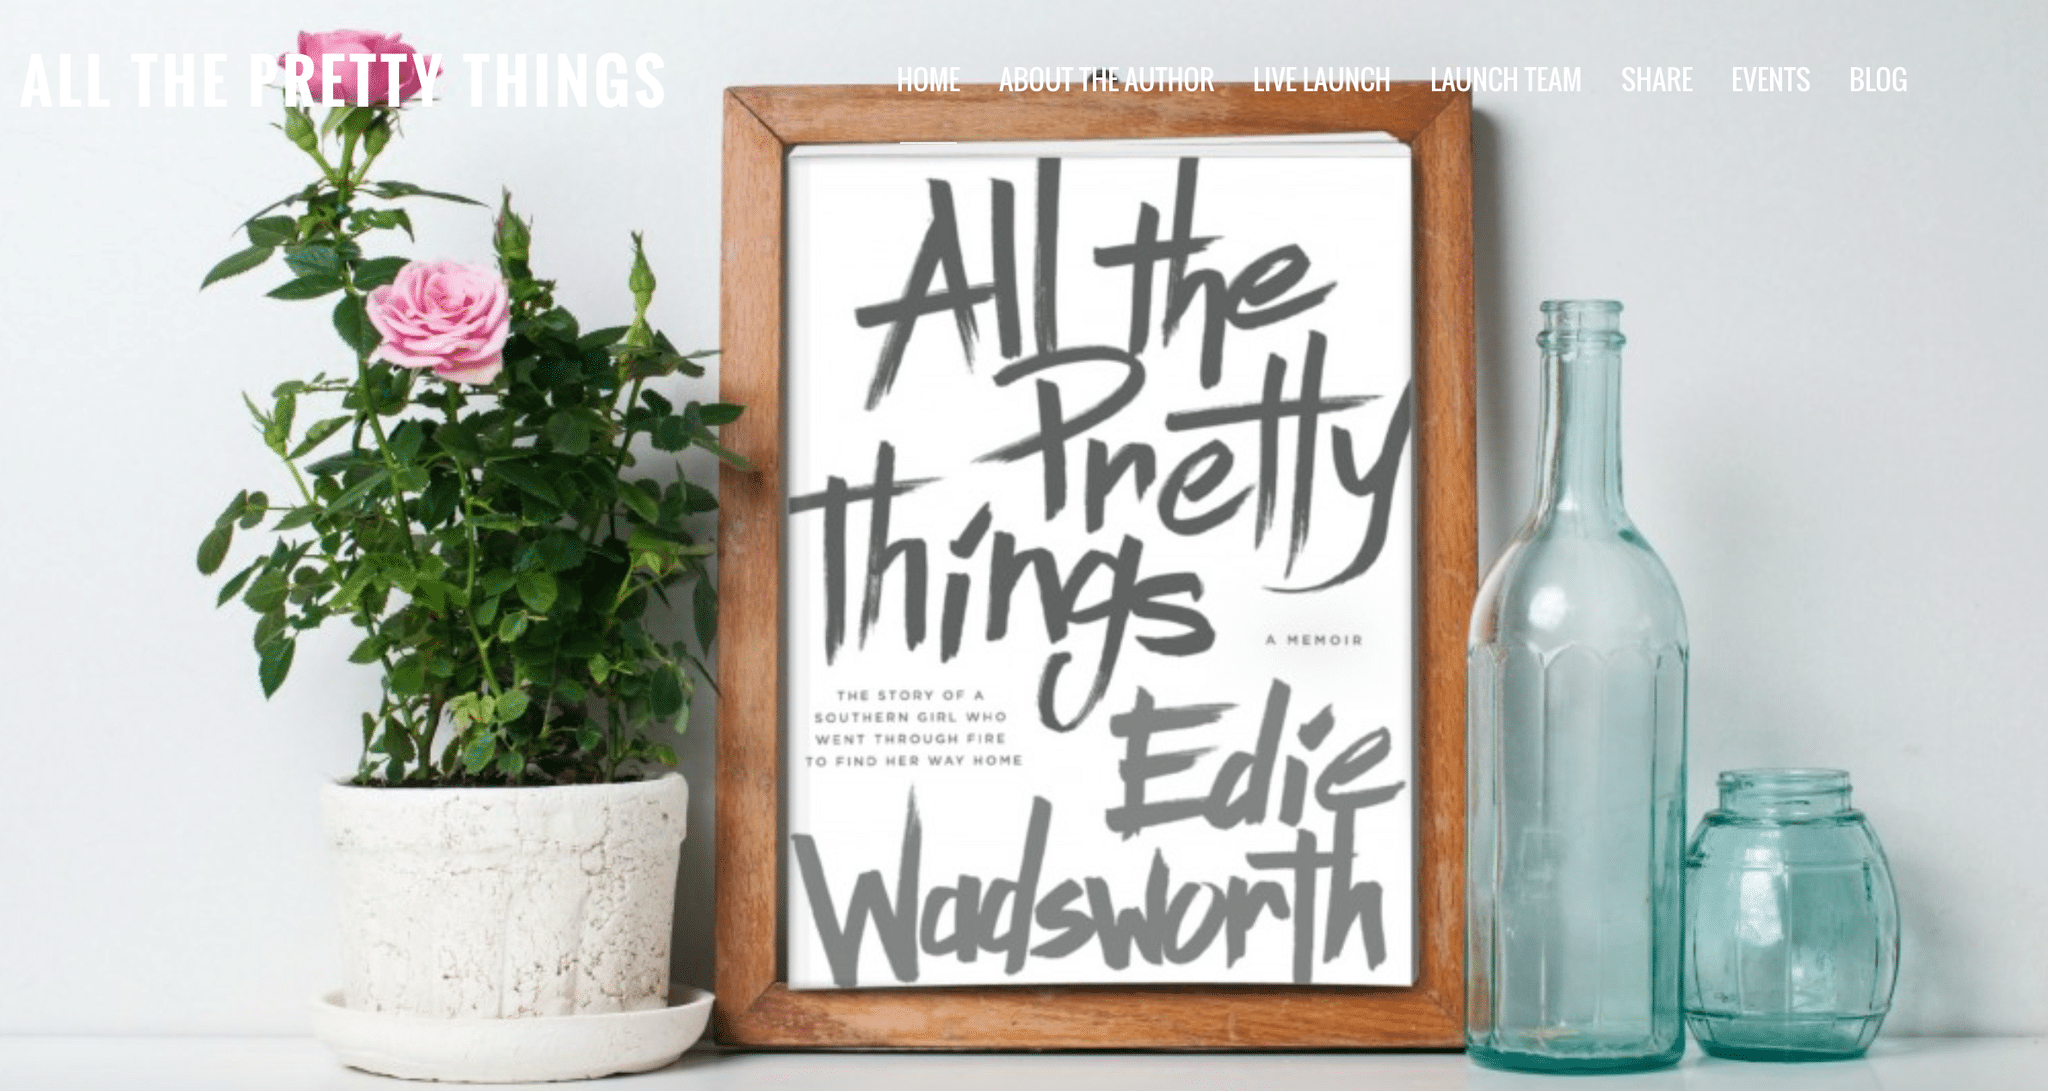 Edie Wadsworth's book, All the Pretty Things is an inspirational read on God and spirituality.